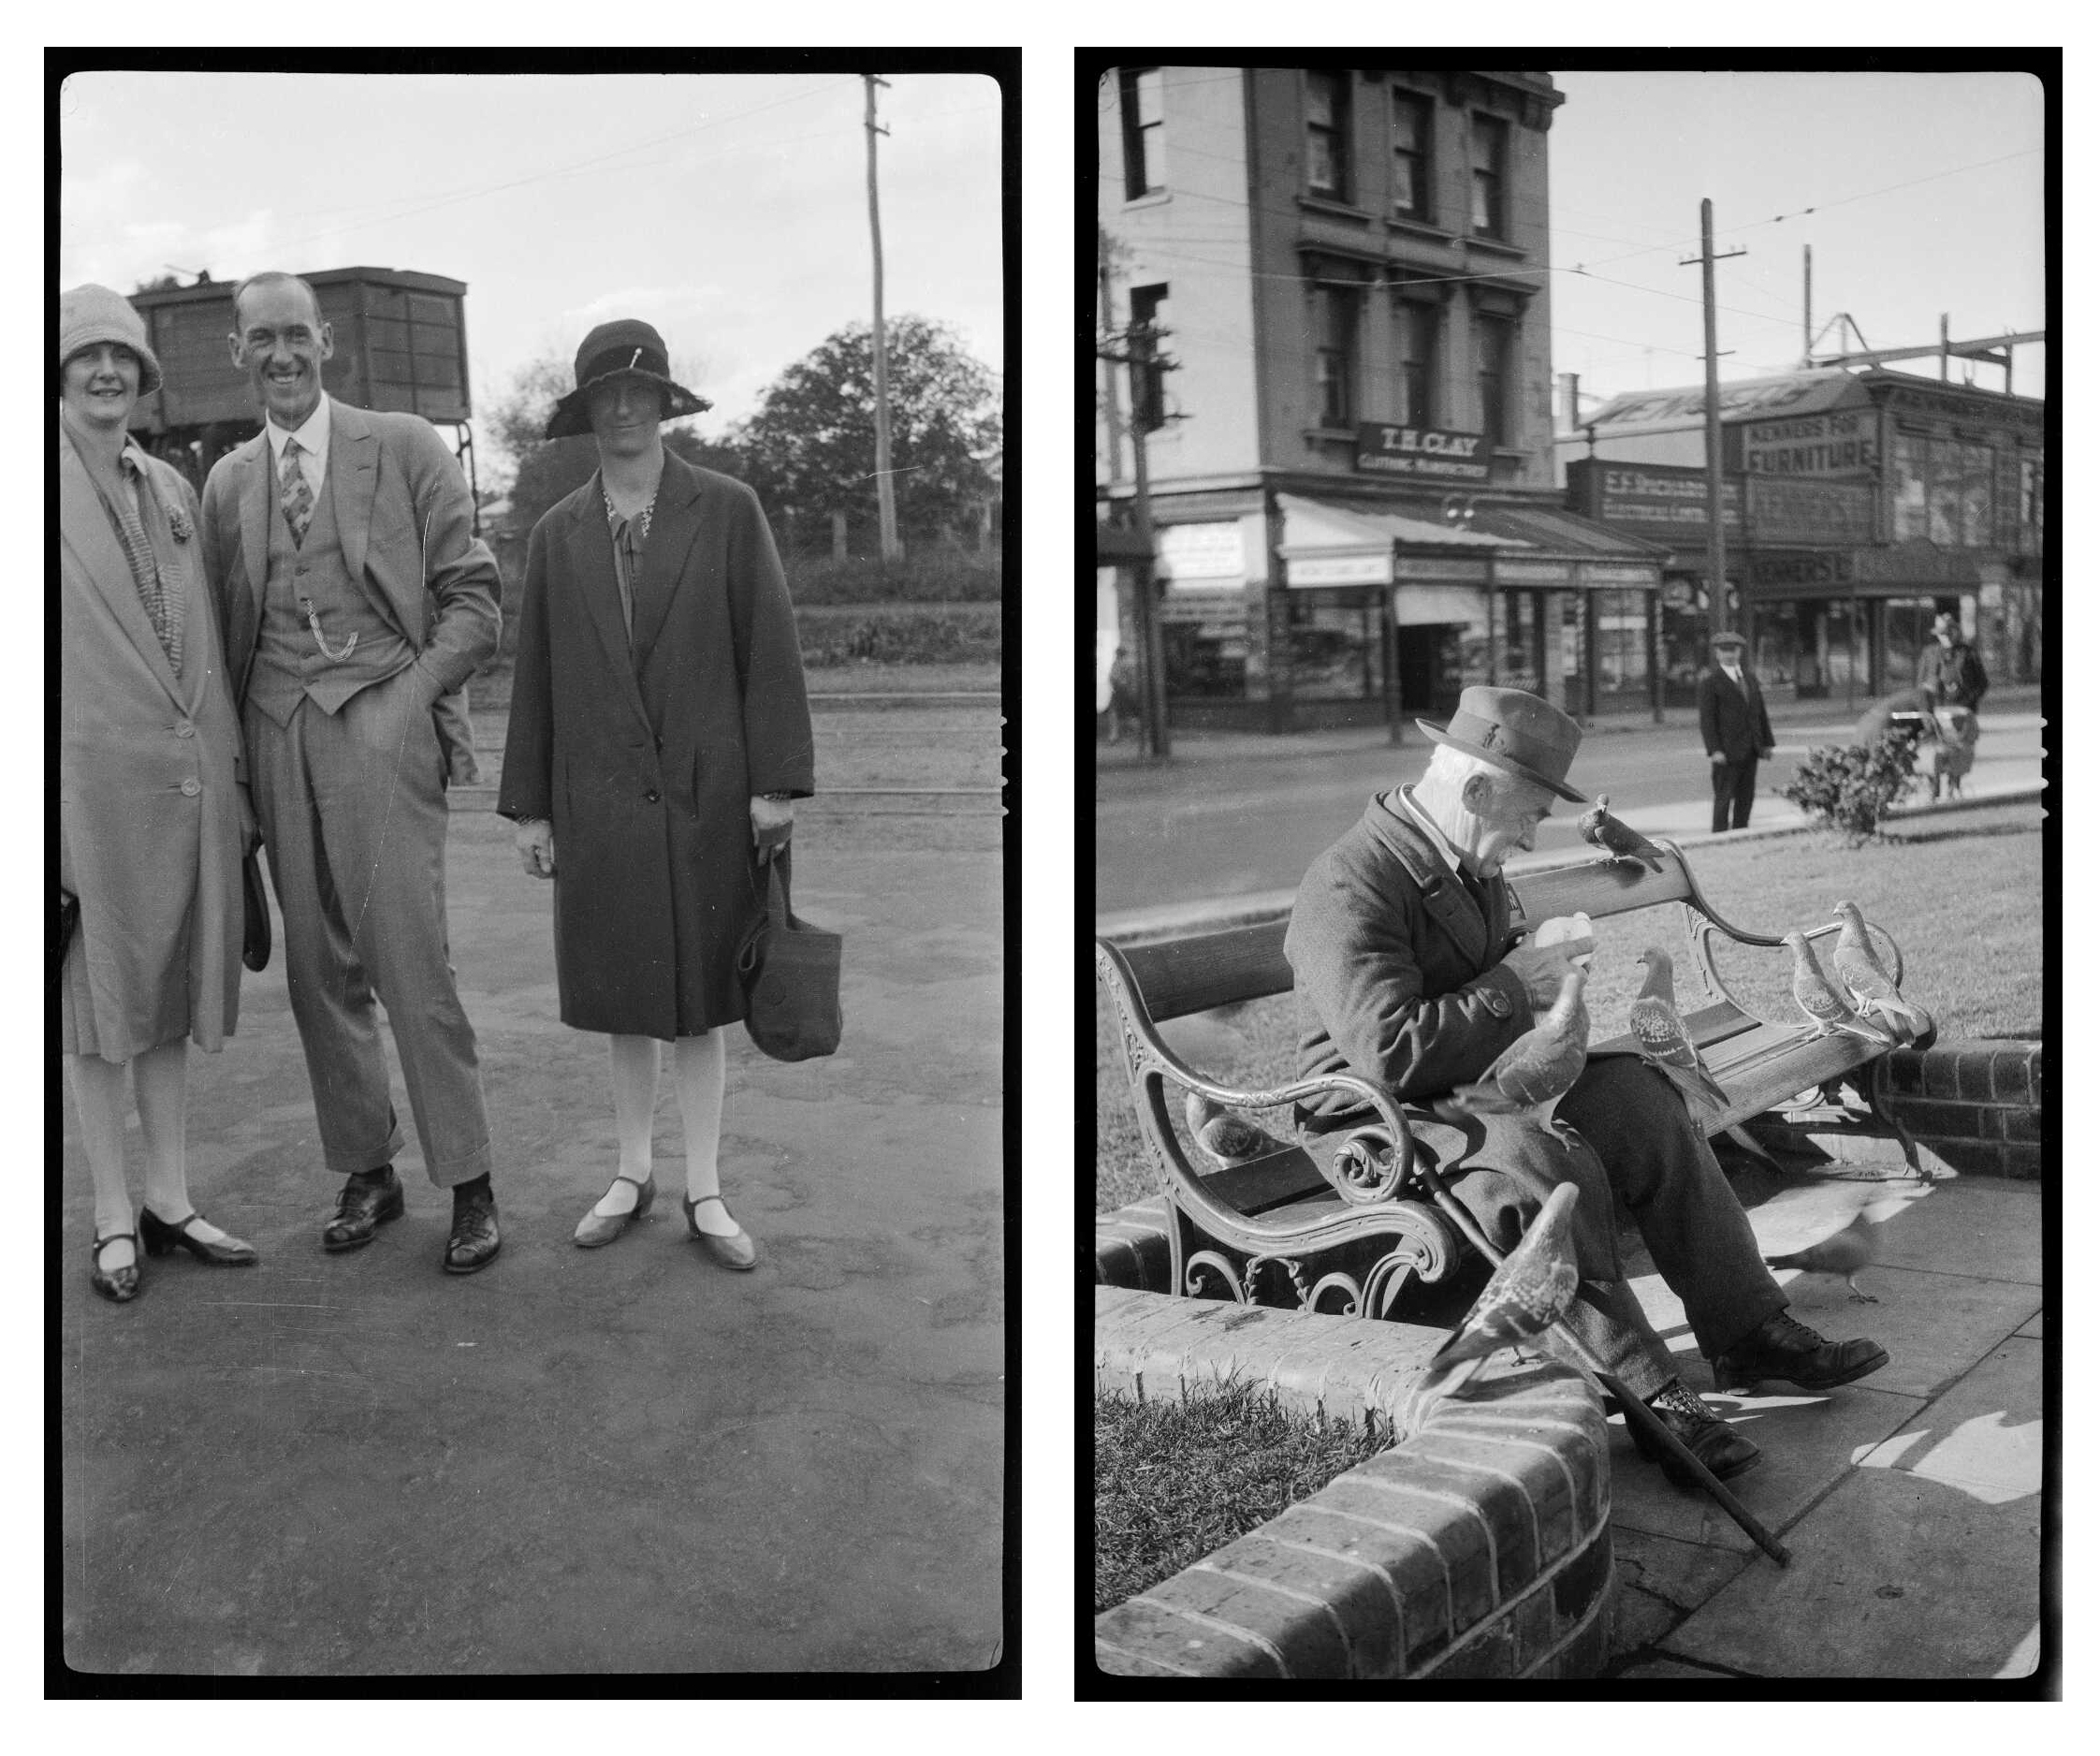 Two black and white images are shown side by side, both with portrait orientation. The image on the left shows a group portrait of three adults dressed formally and the image on the right shows a man on park bench feeding pigeons.